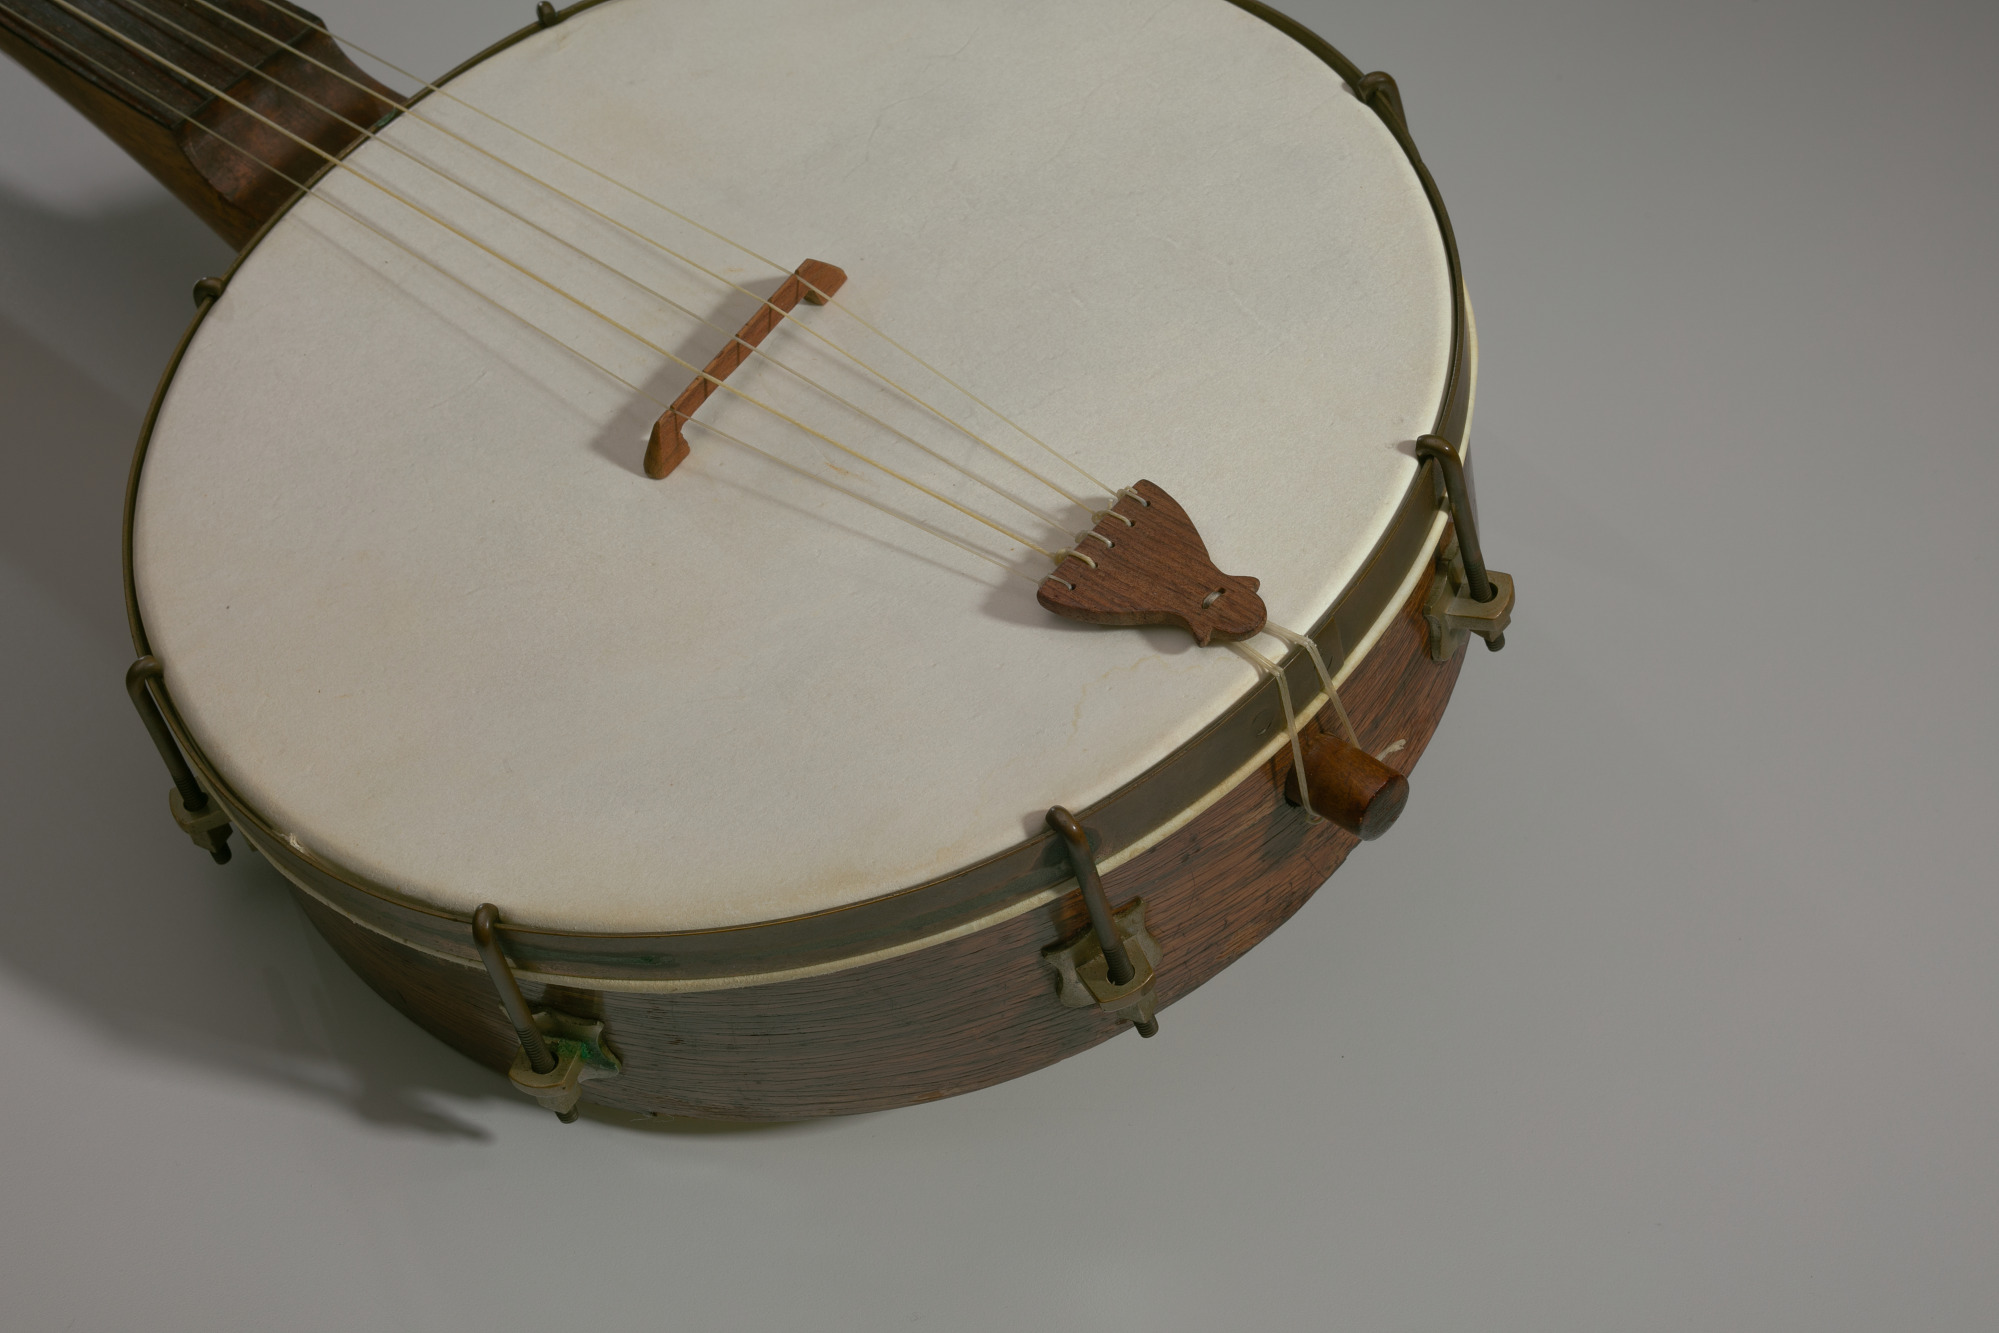 Banjo made in the style of William Esperance Boucher, Jr. - Image version 3